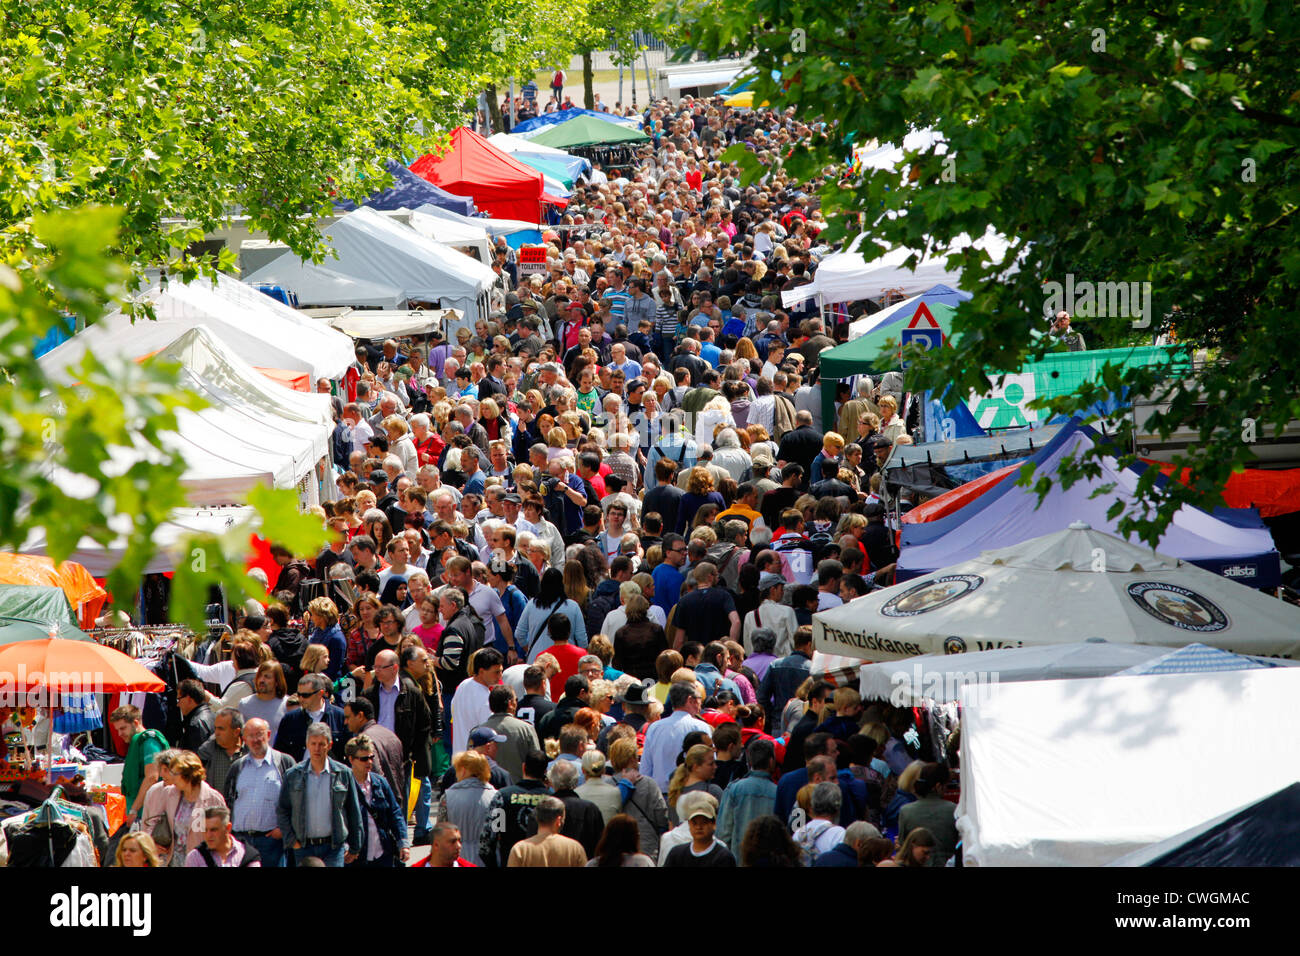 Large Flea Market for everybody, second hand market. Essen, Germany, Europe - Stock Image